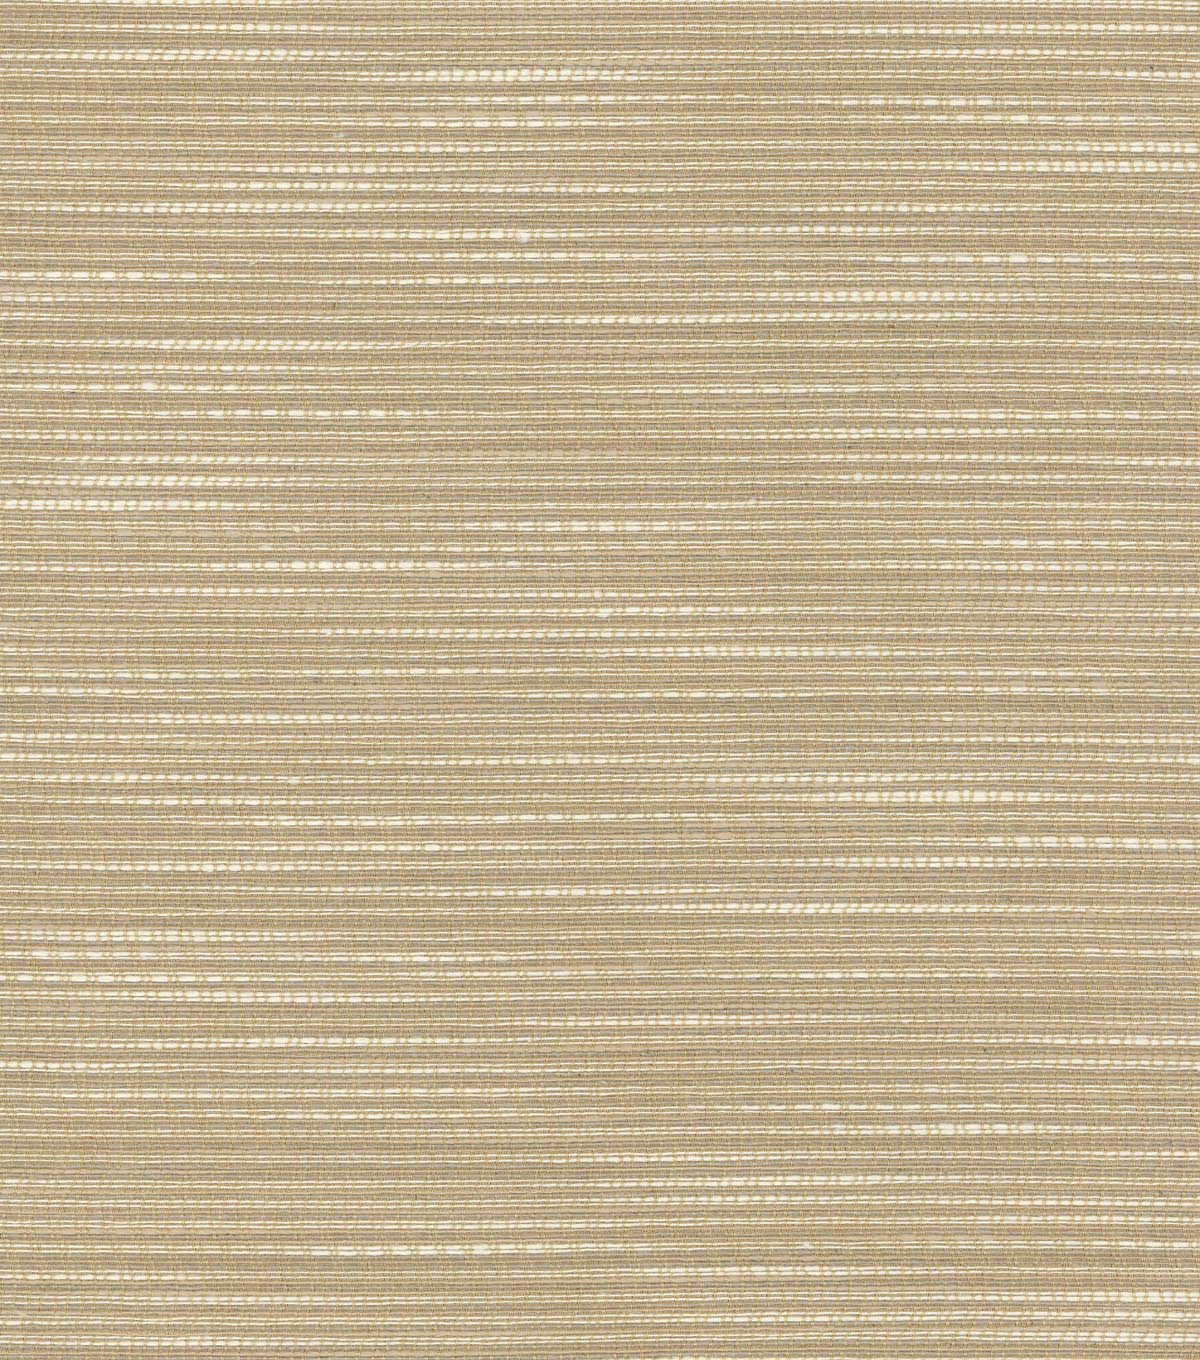 P/K Lifestyles Multi-Purpose Decor Fabric 56\u0022-Shimmy/Driftwood